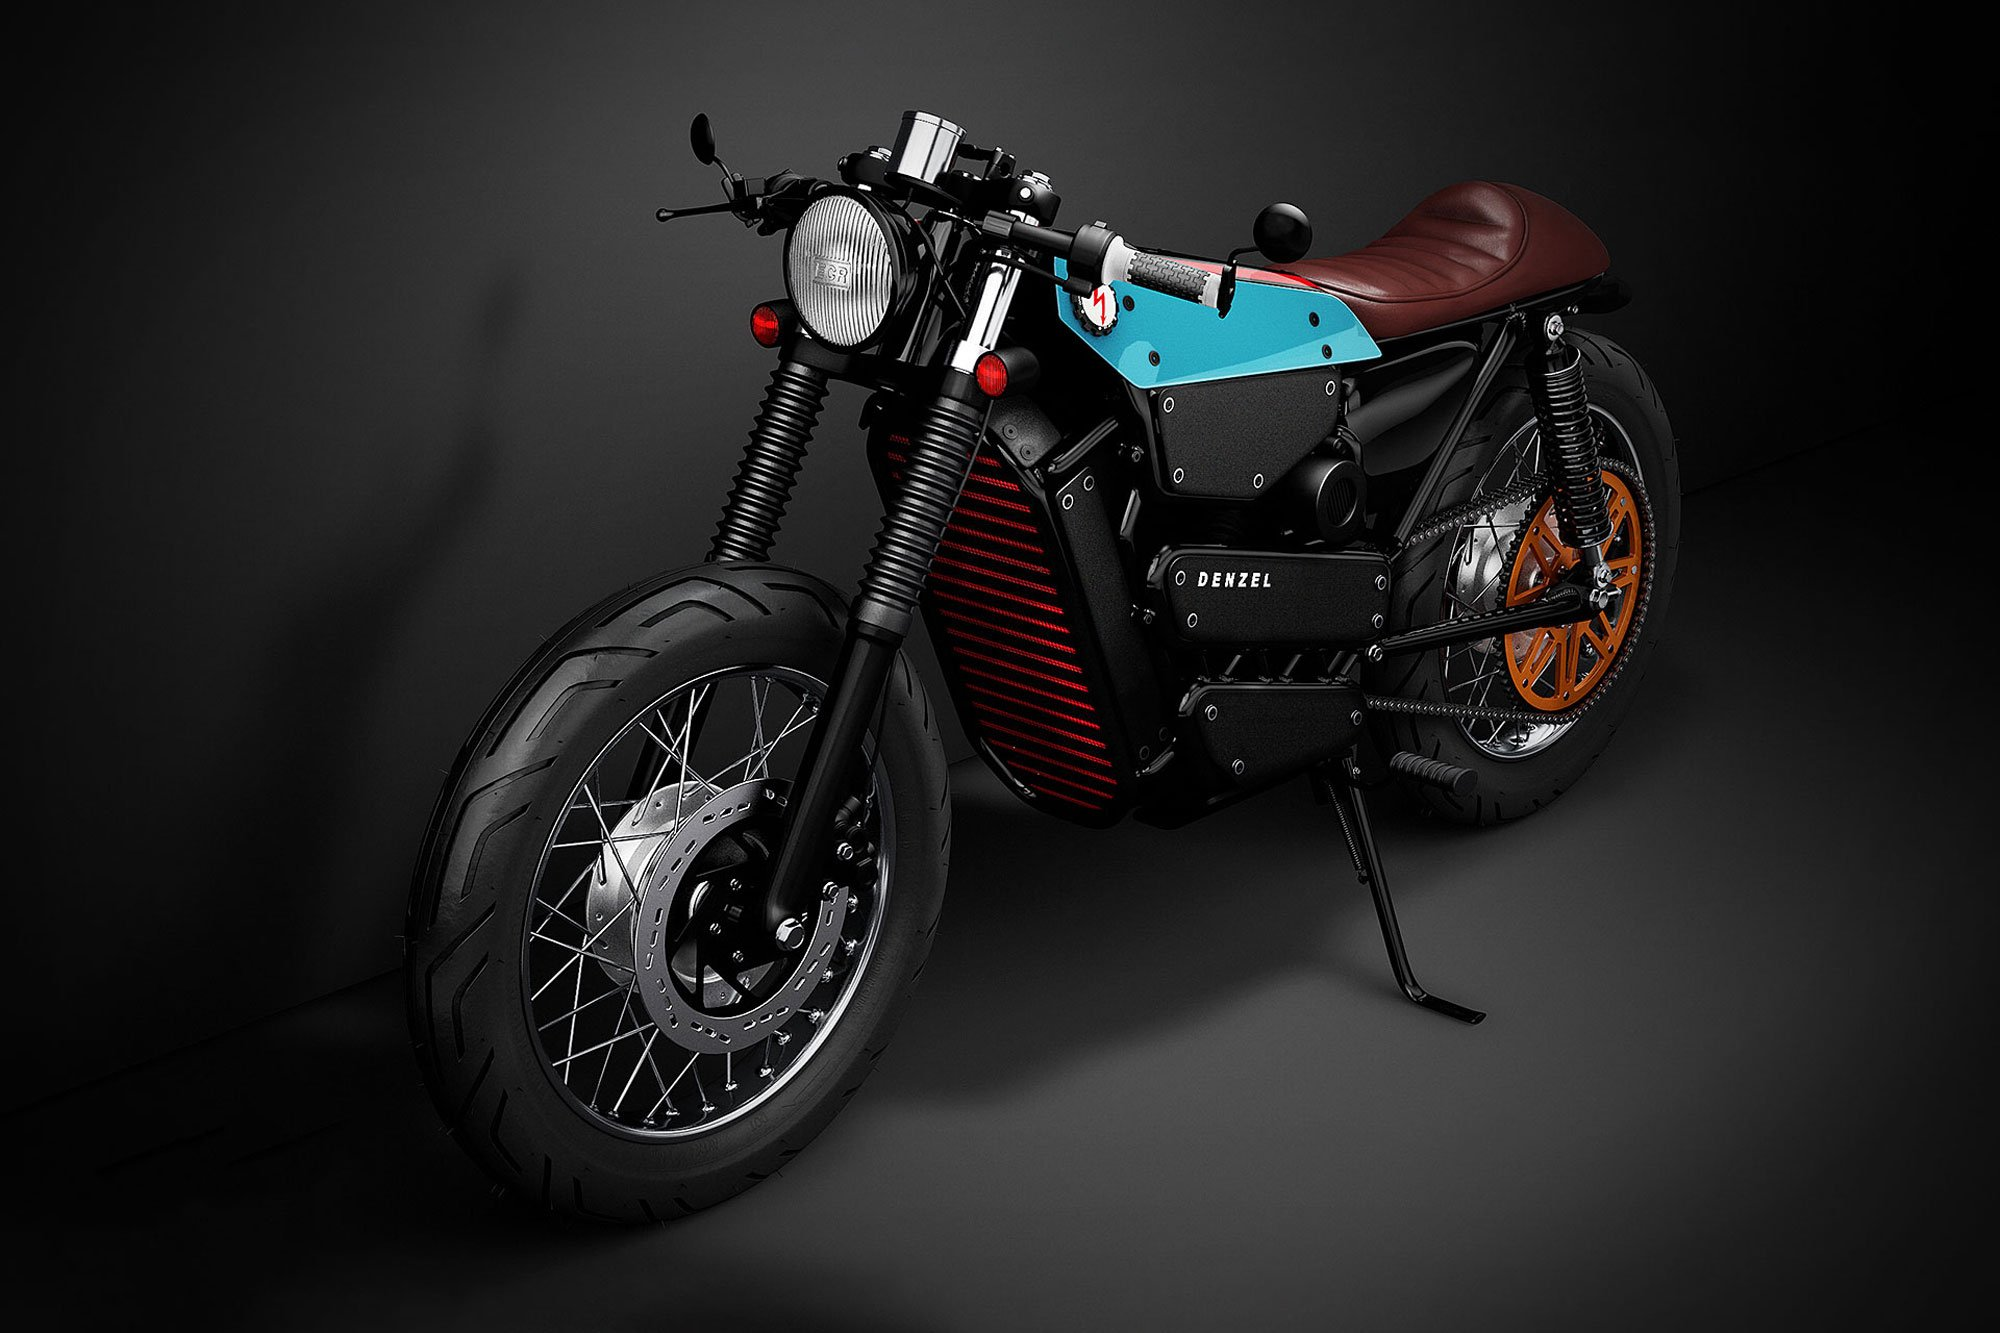 A Honda Electric Cafe Racer Motorcycle Concept